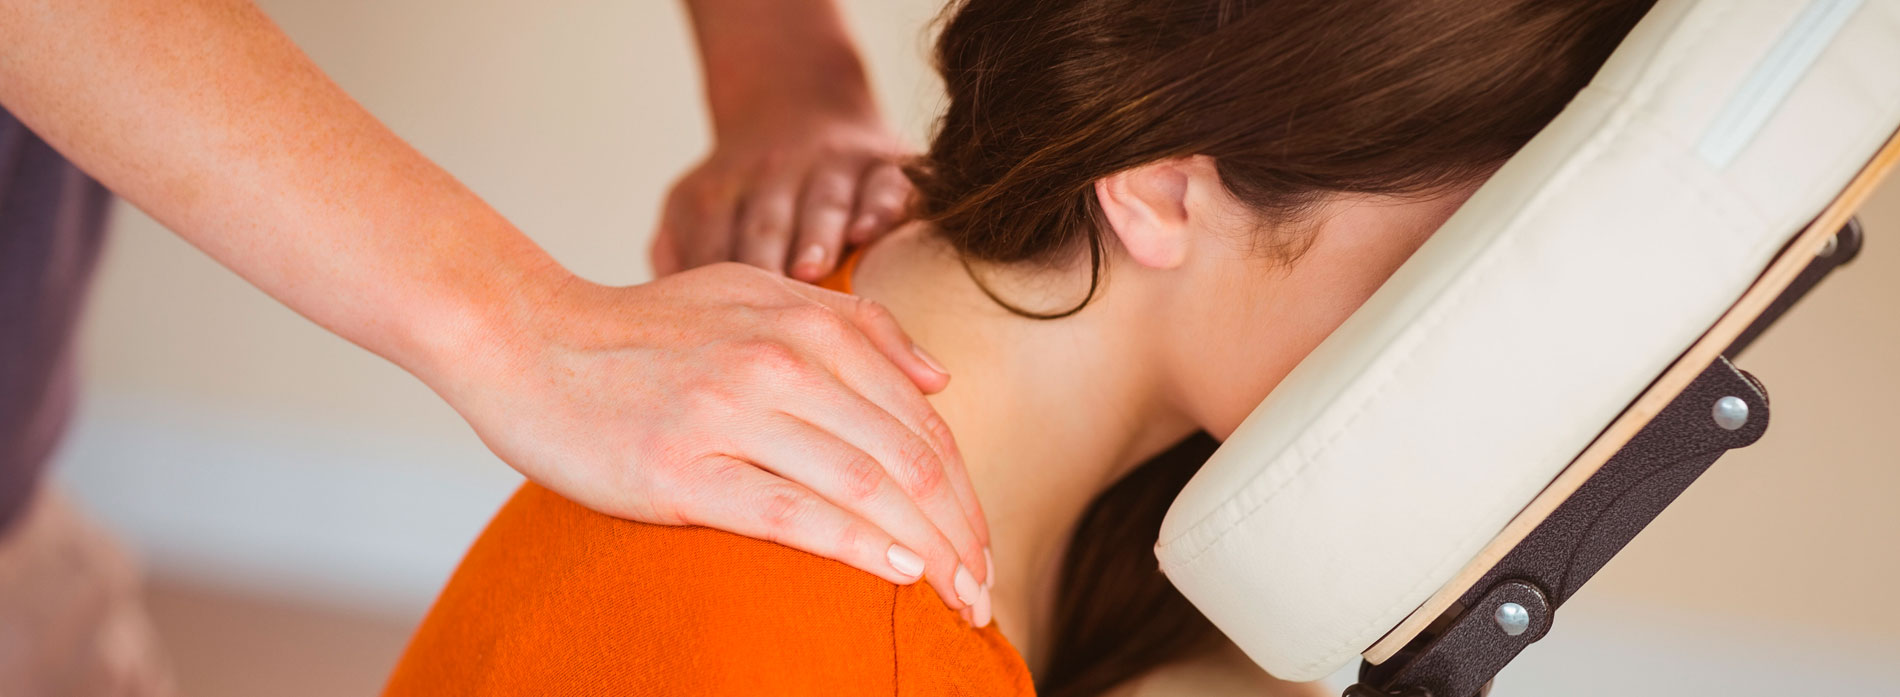 How to Choose a Massage Course How to Choose a Massage Course new pics